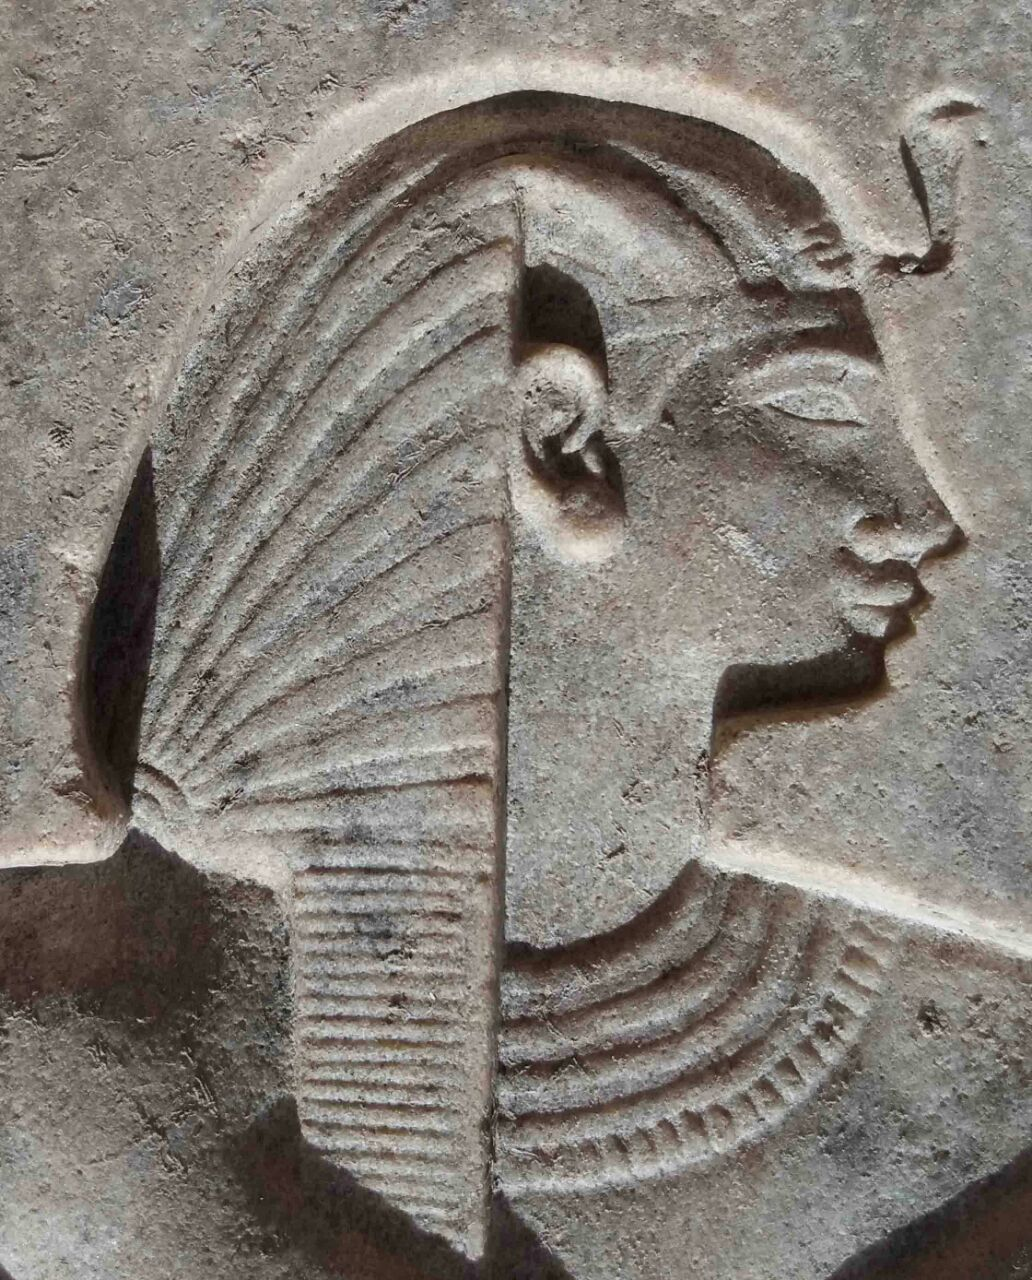 Luxor Times Magazine All The Latest News Views And Articles From Luxor And All Over Egypt Concerning History Culture And To Egypt Tourism Egypt Lion Sculpture